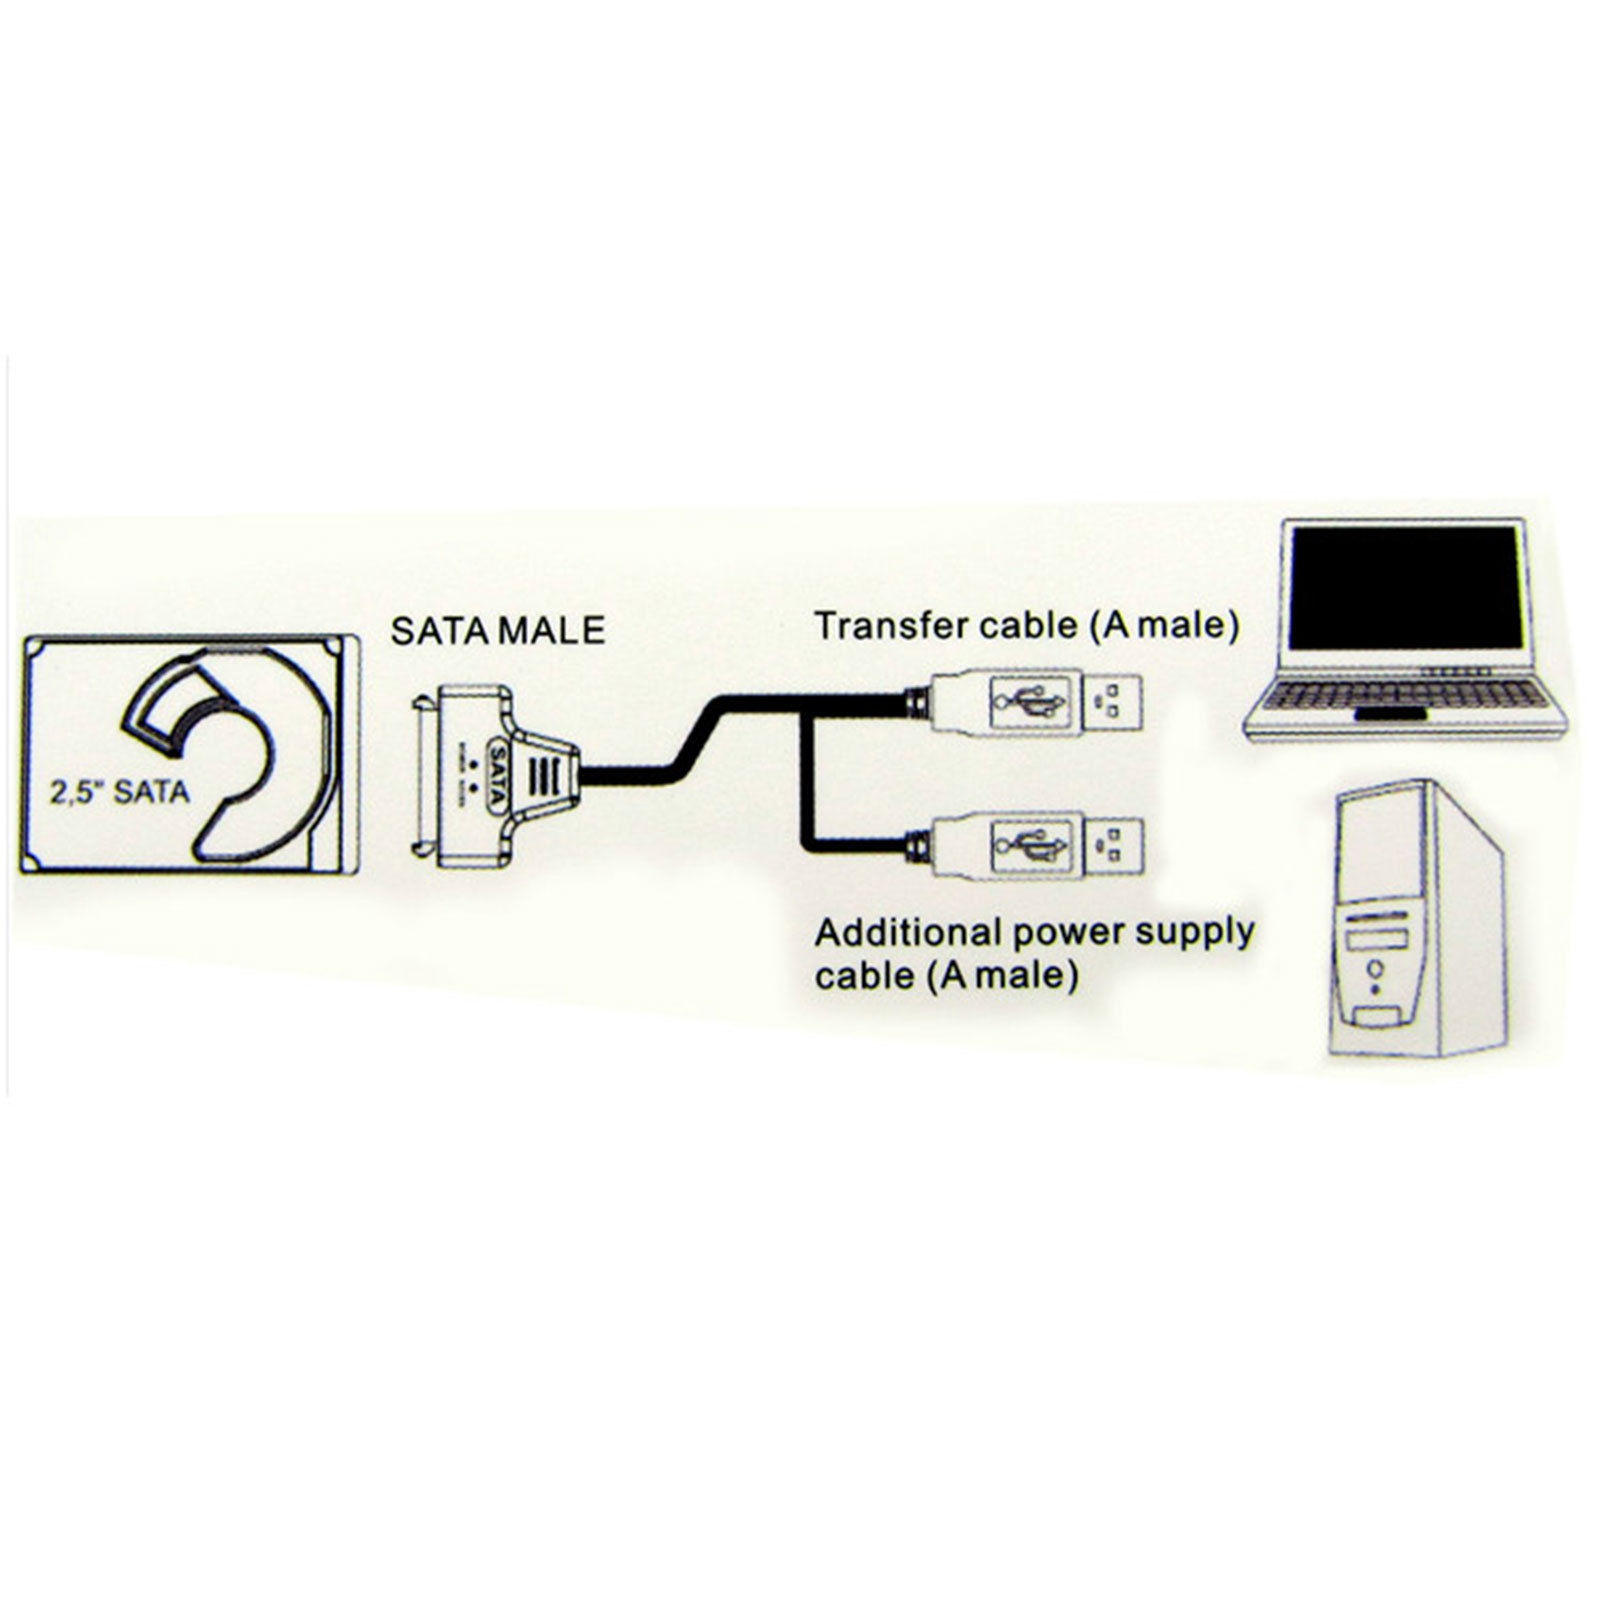 Wiring Diagram Sata   Wiring Library - Schematic Wiring Diagram For A Usb To Hdd Backup Device